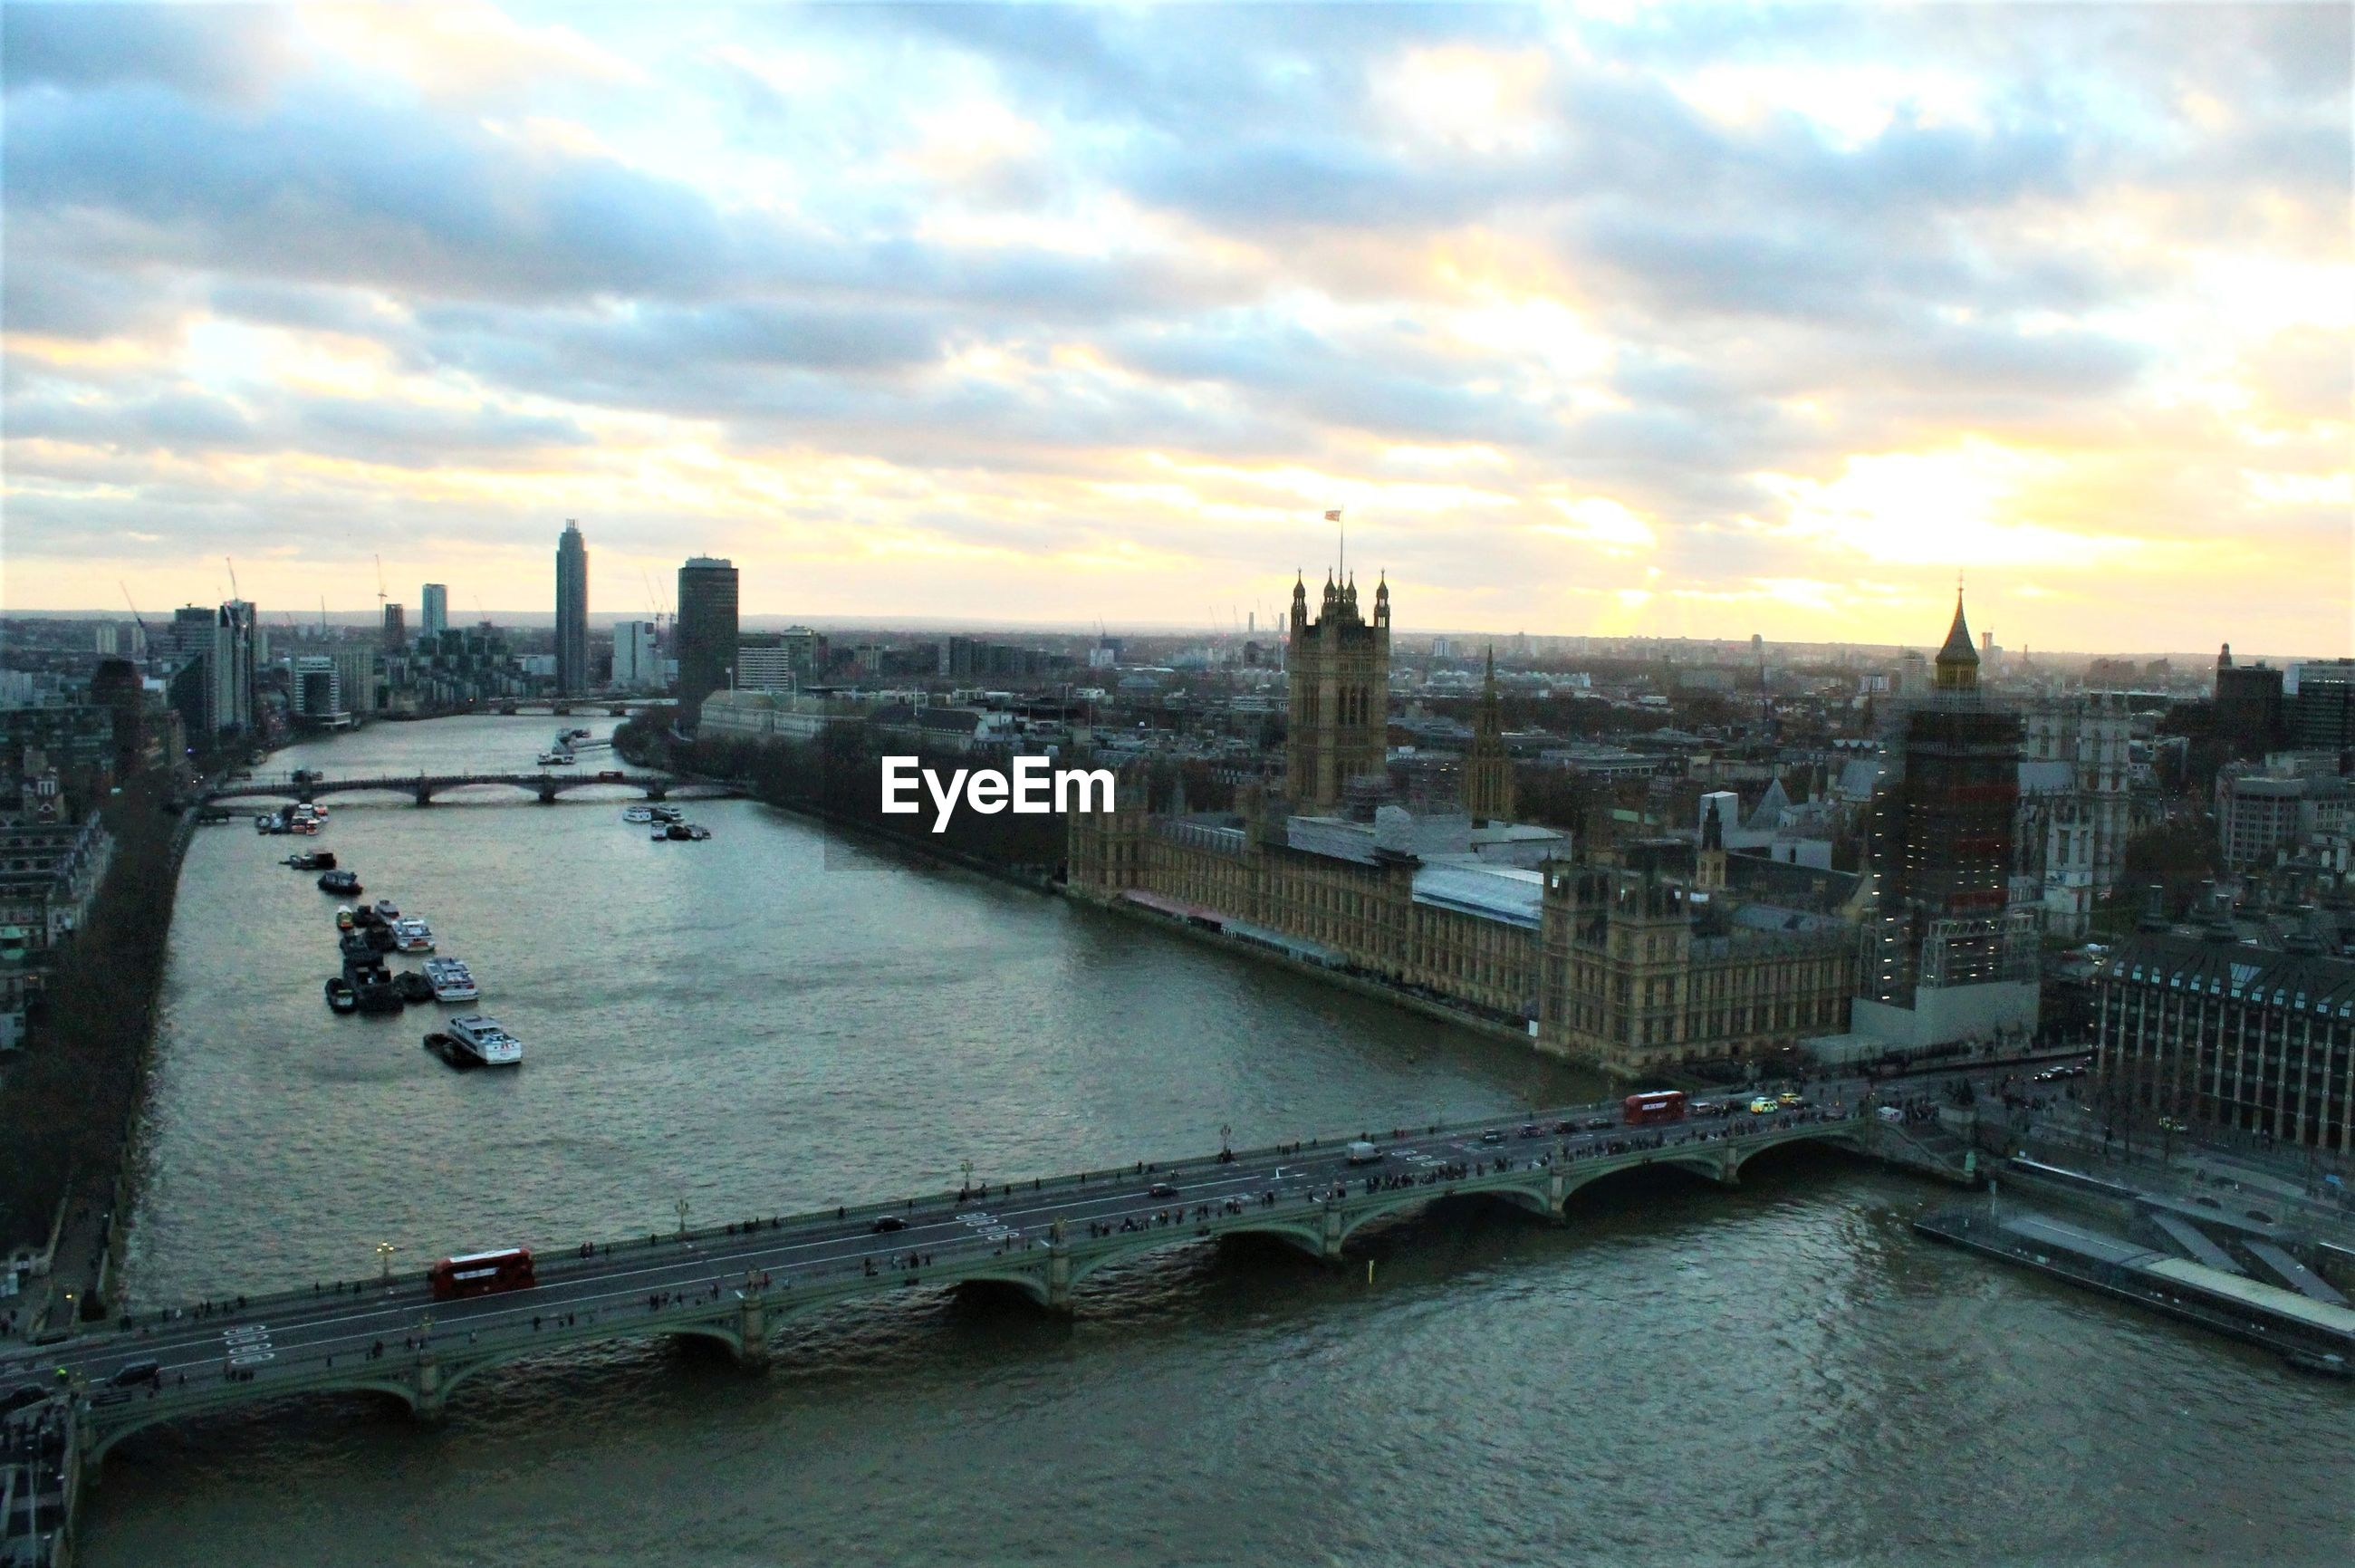 High angle view of westminster bridge over river against buildings in city